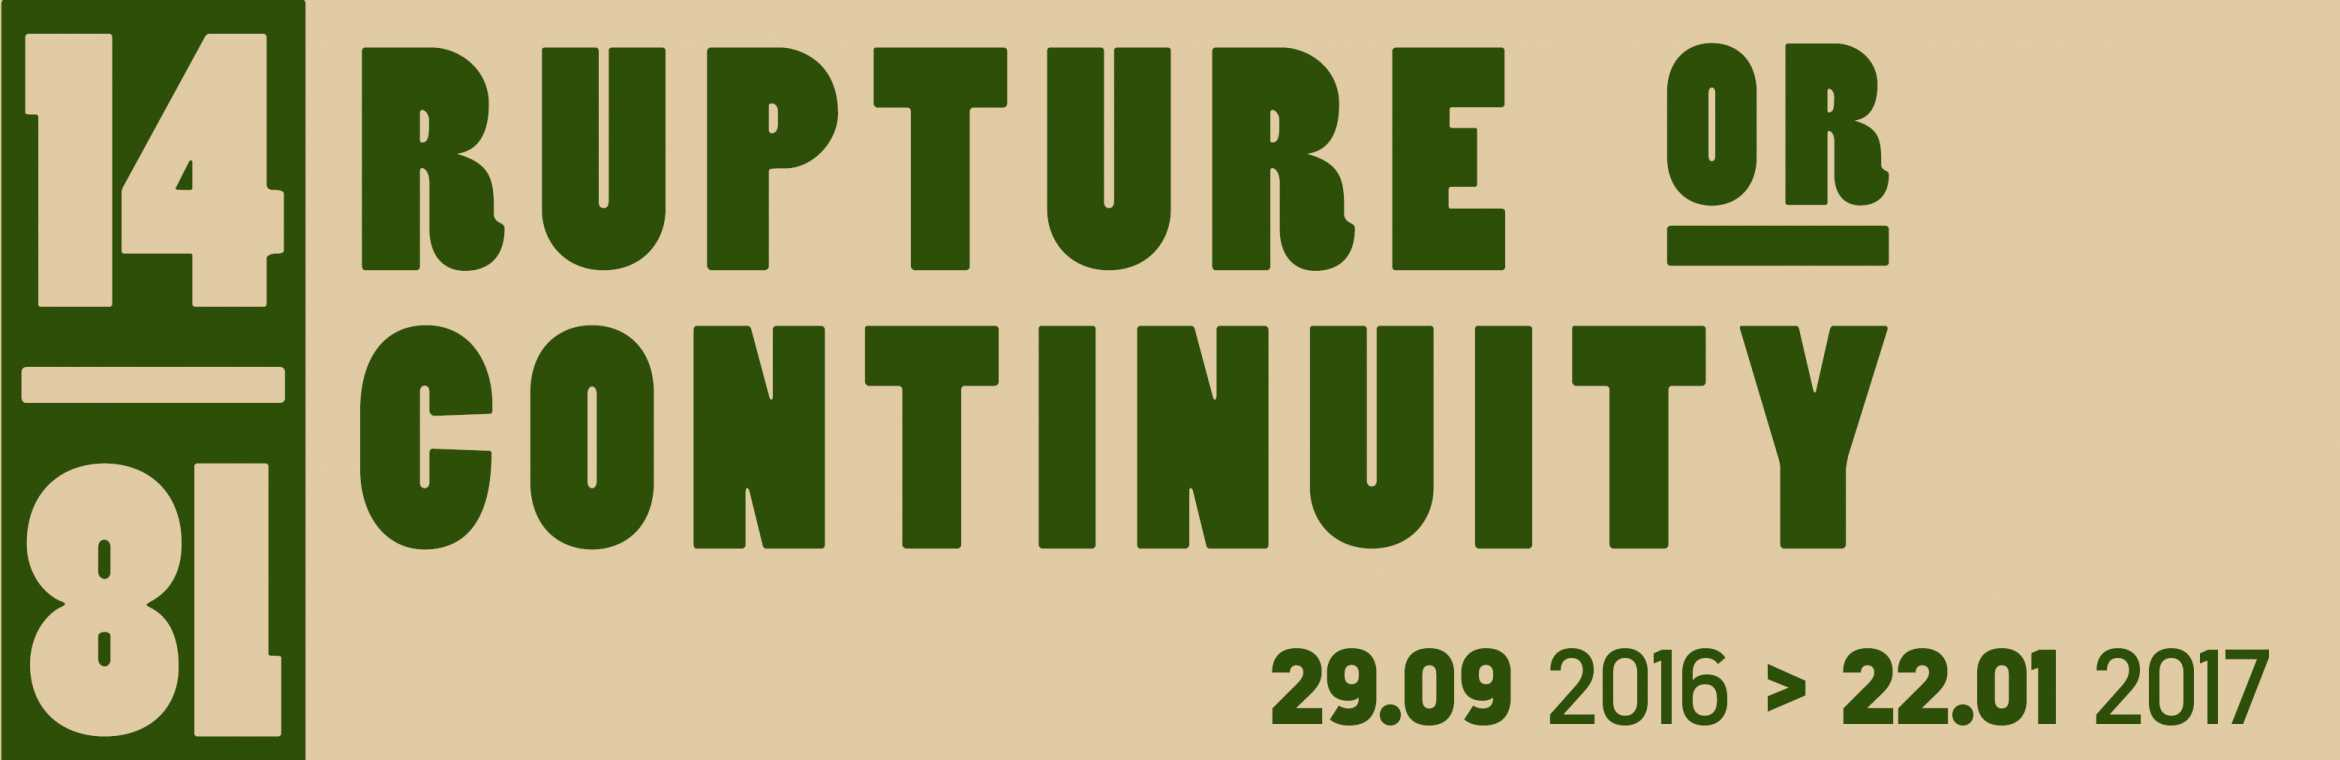 14 - 18 / Rupture or Continuity / 29.09 2016 > 22.01 2017